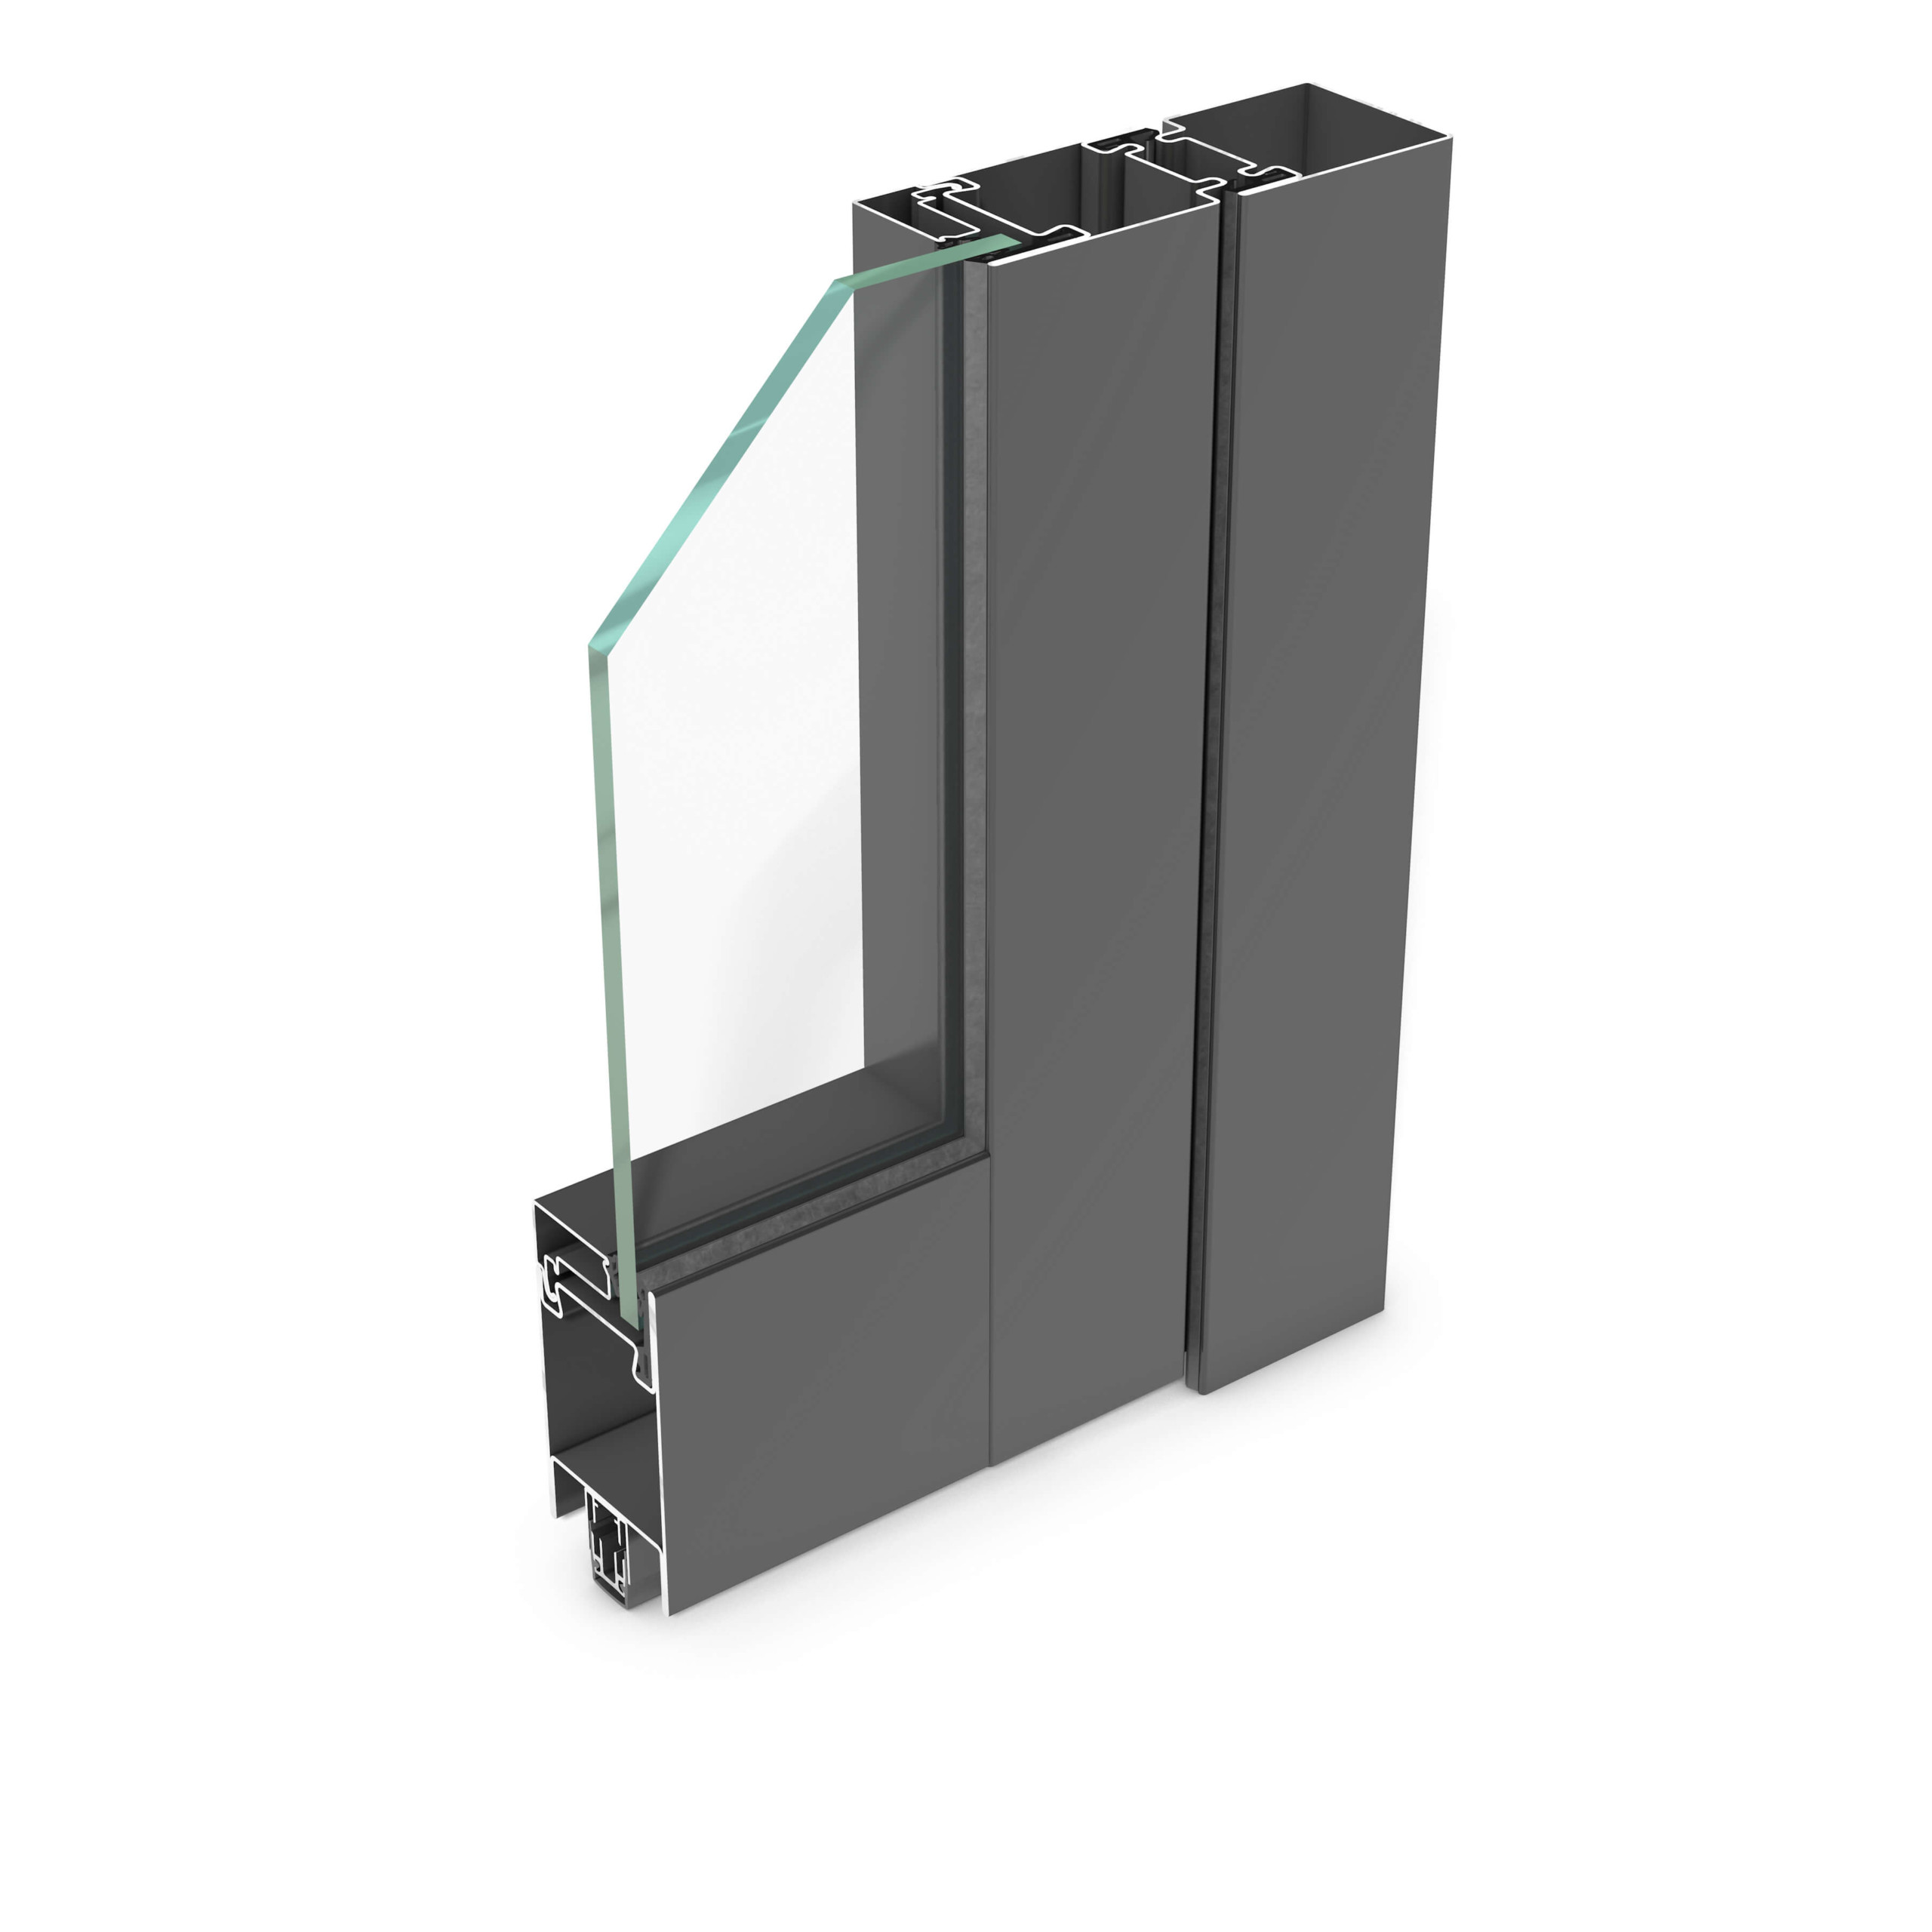 rp hermetic 55D – steel door profile system with burglar resistance up to RC3